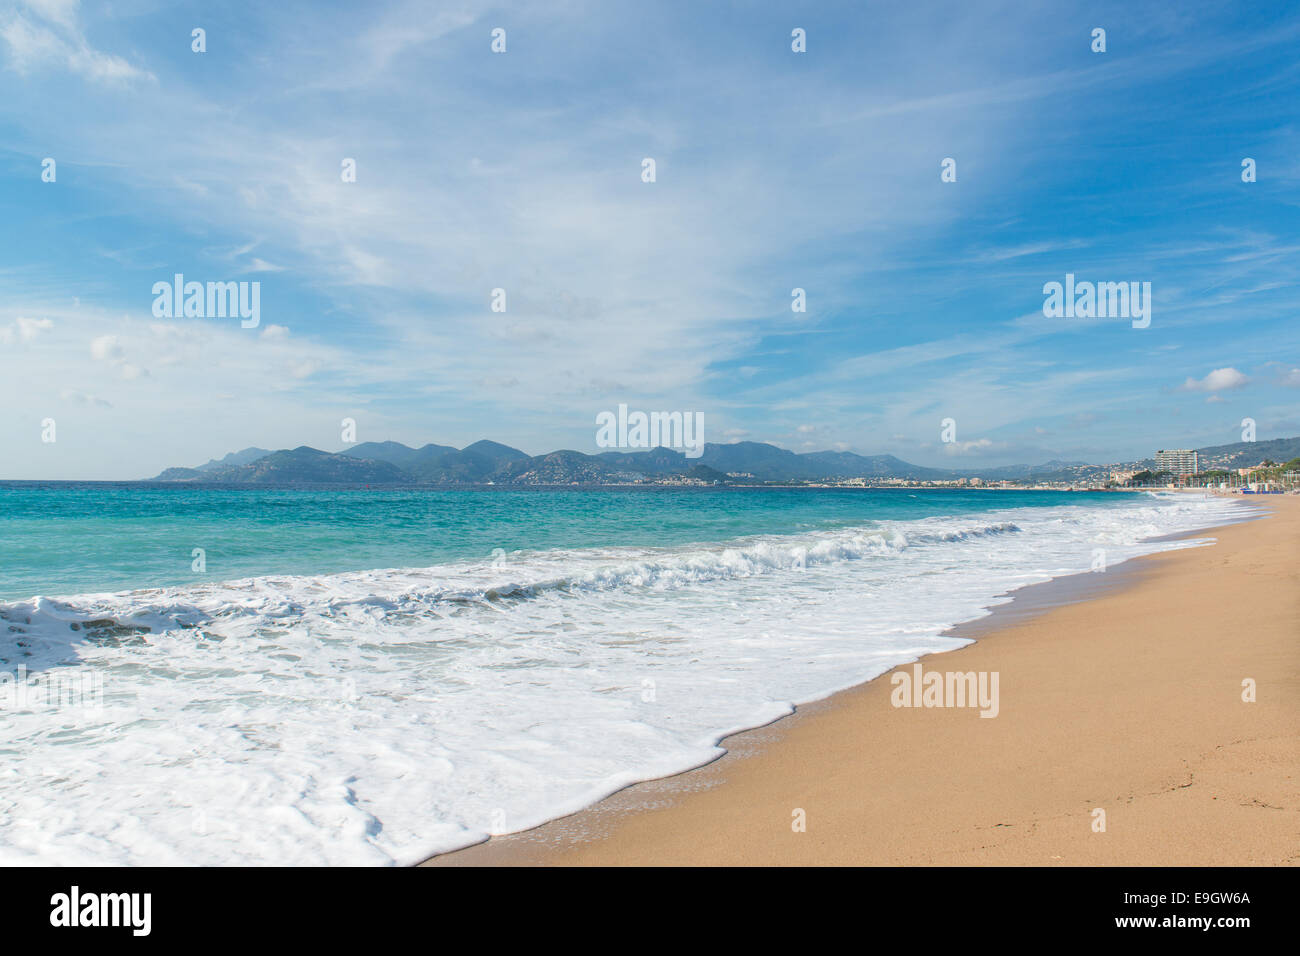 Midi Plage beach in Cannes, France - Stock Image